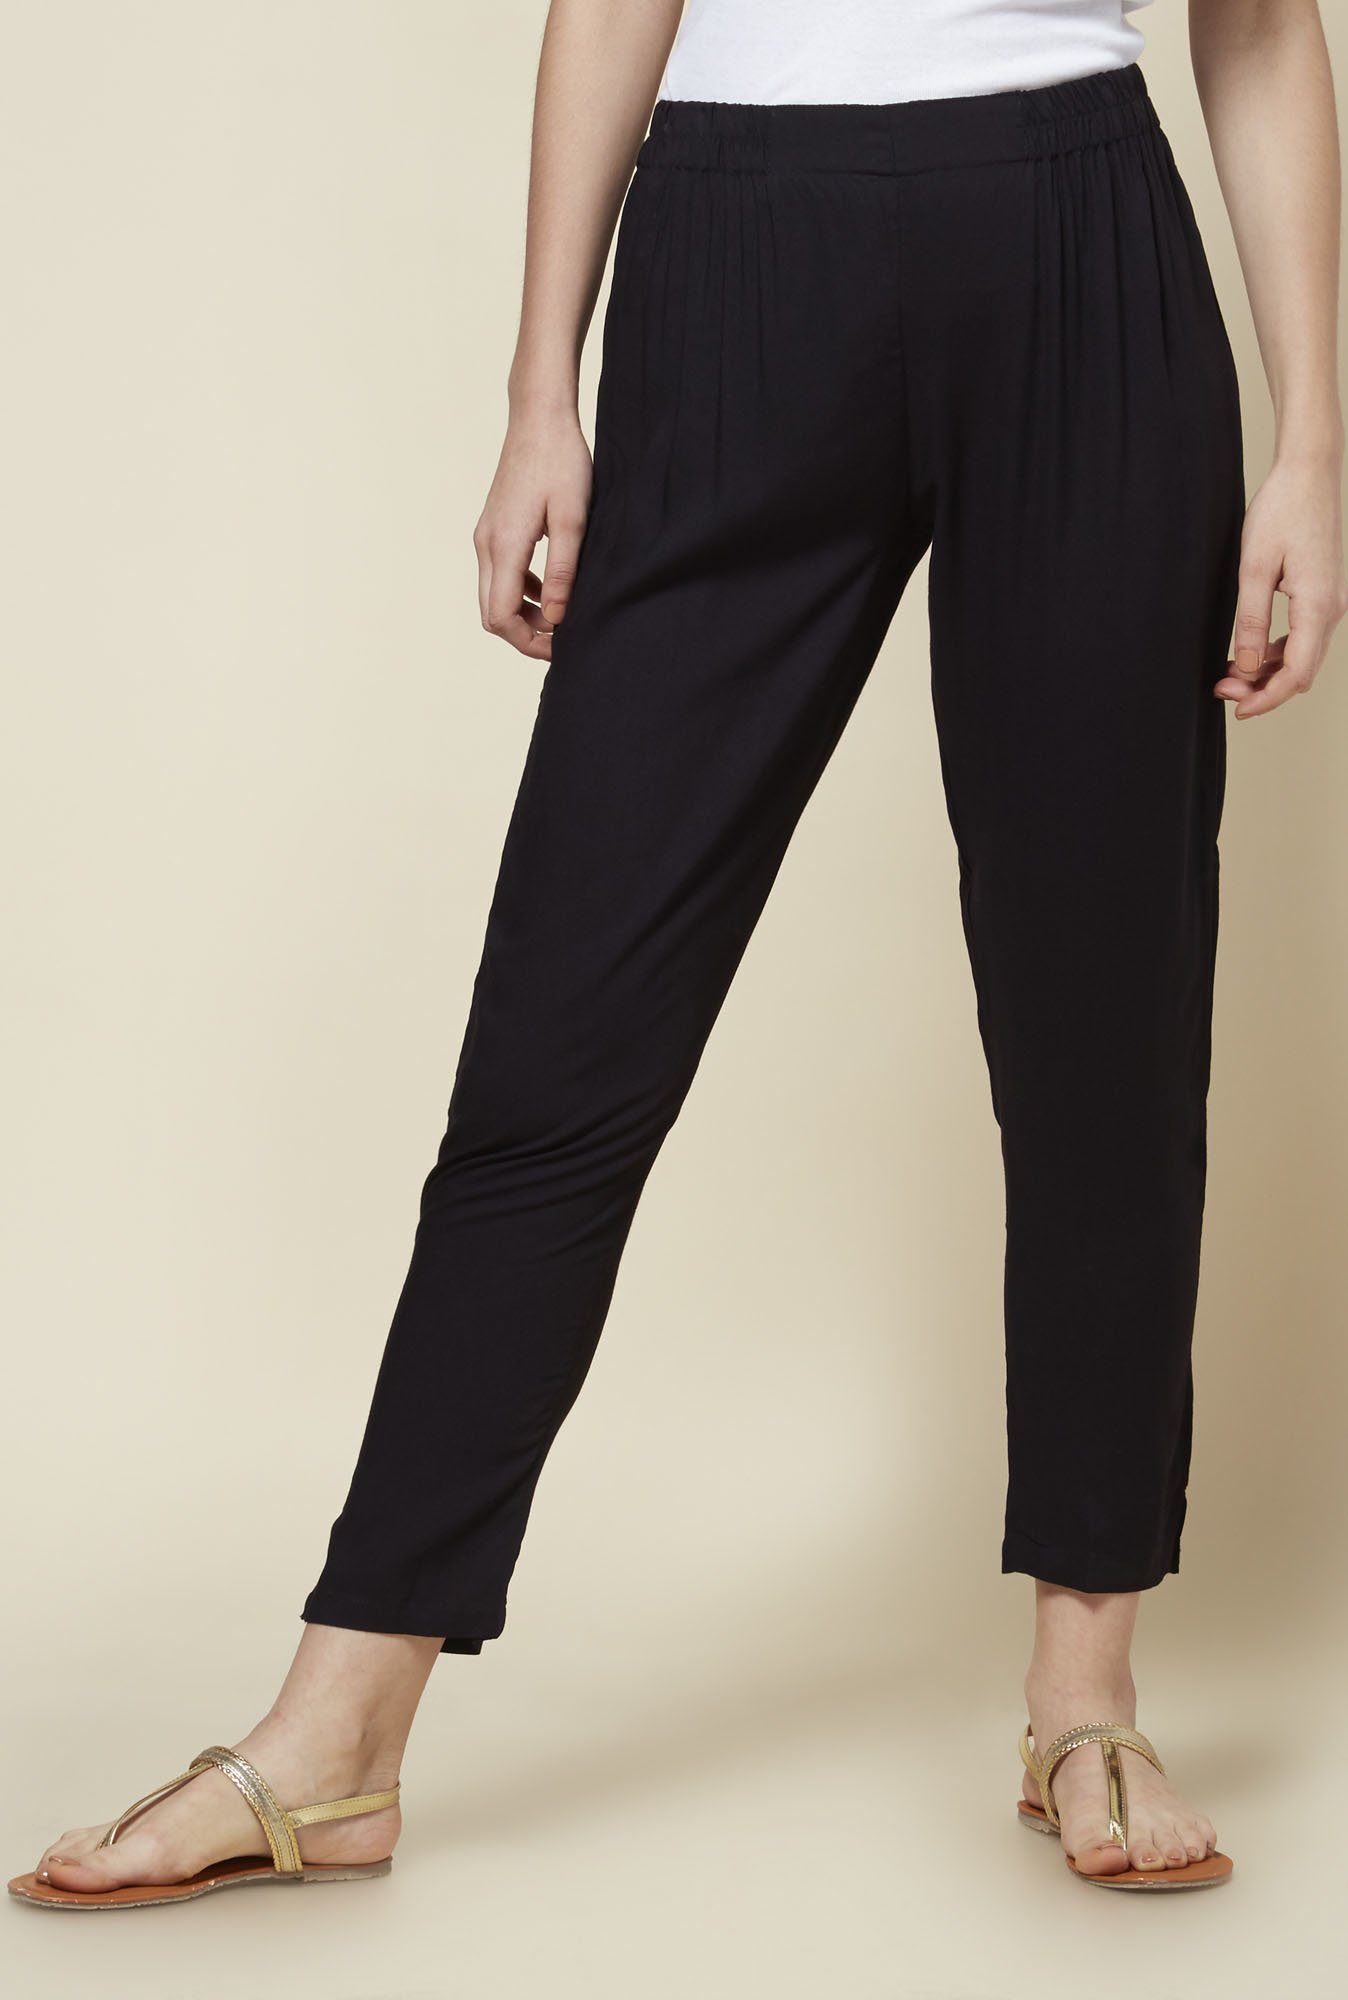 Zudio Black Cigarette Pants